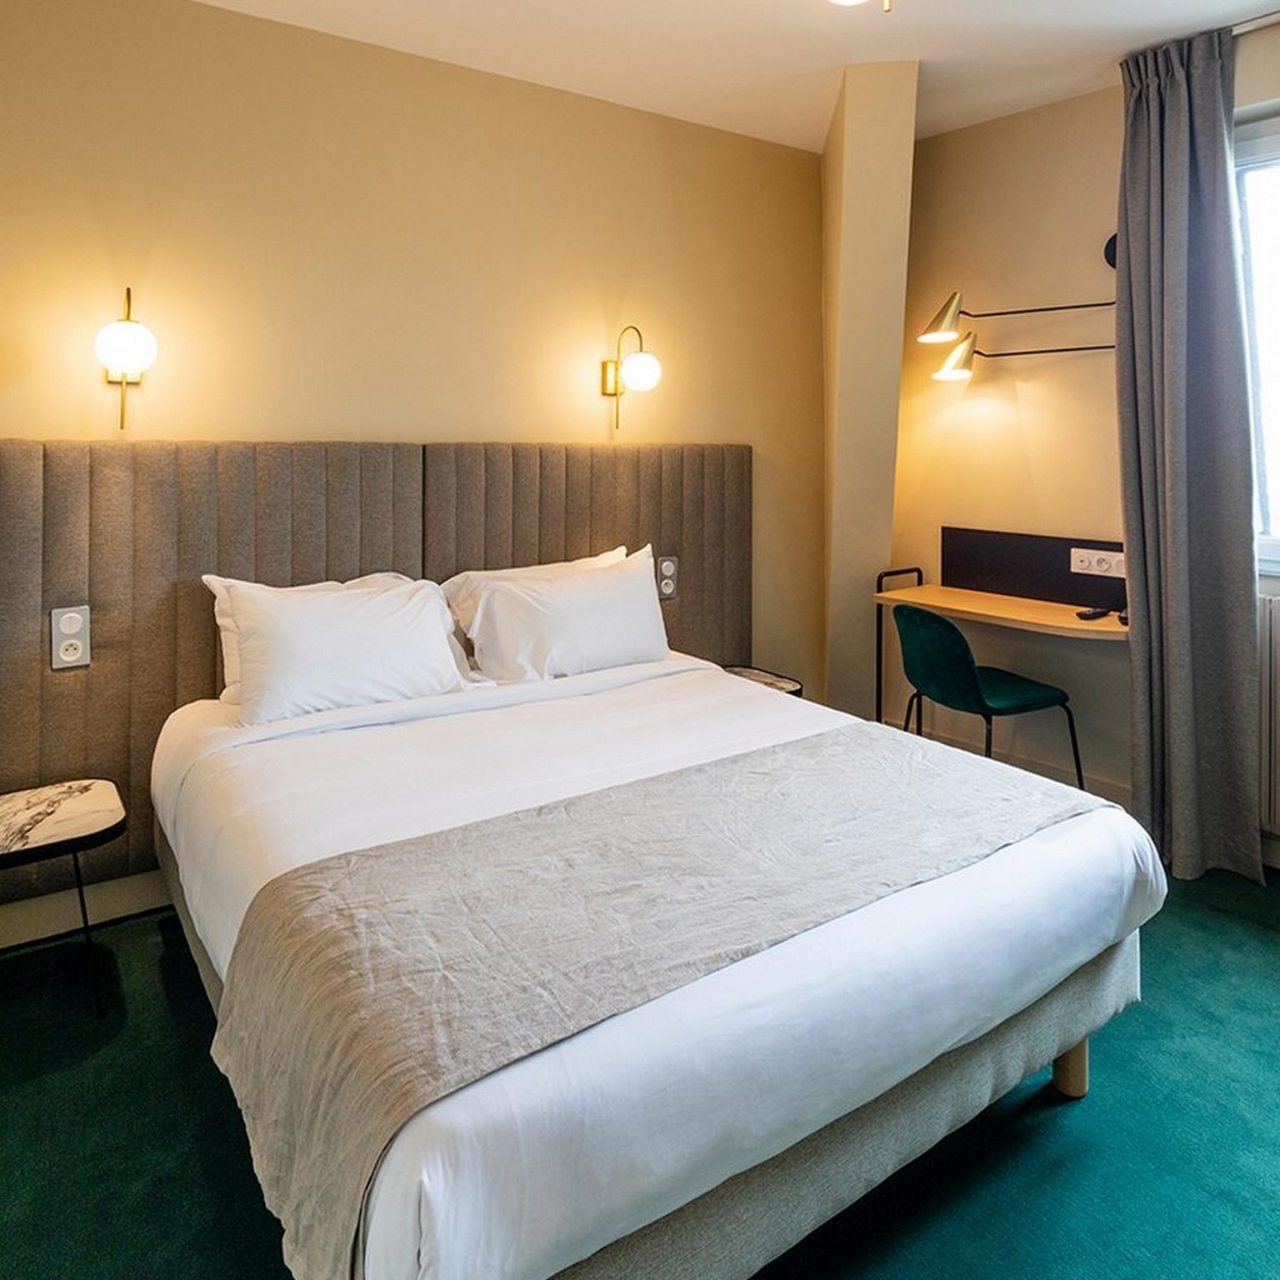 Grand Hotel De La Gare France At Hrs With Free Services